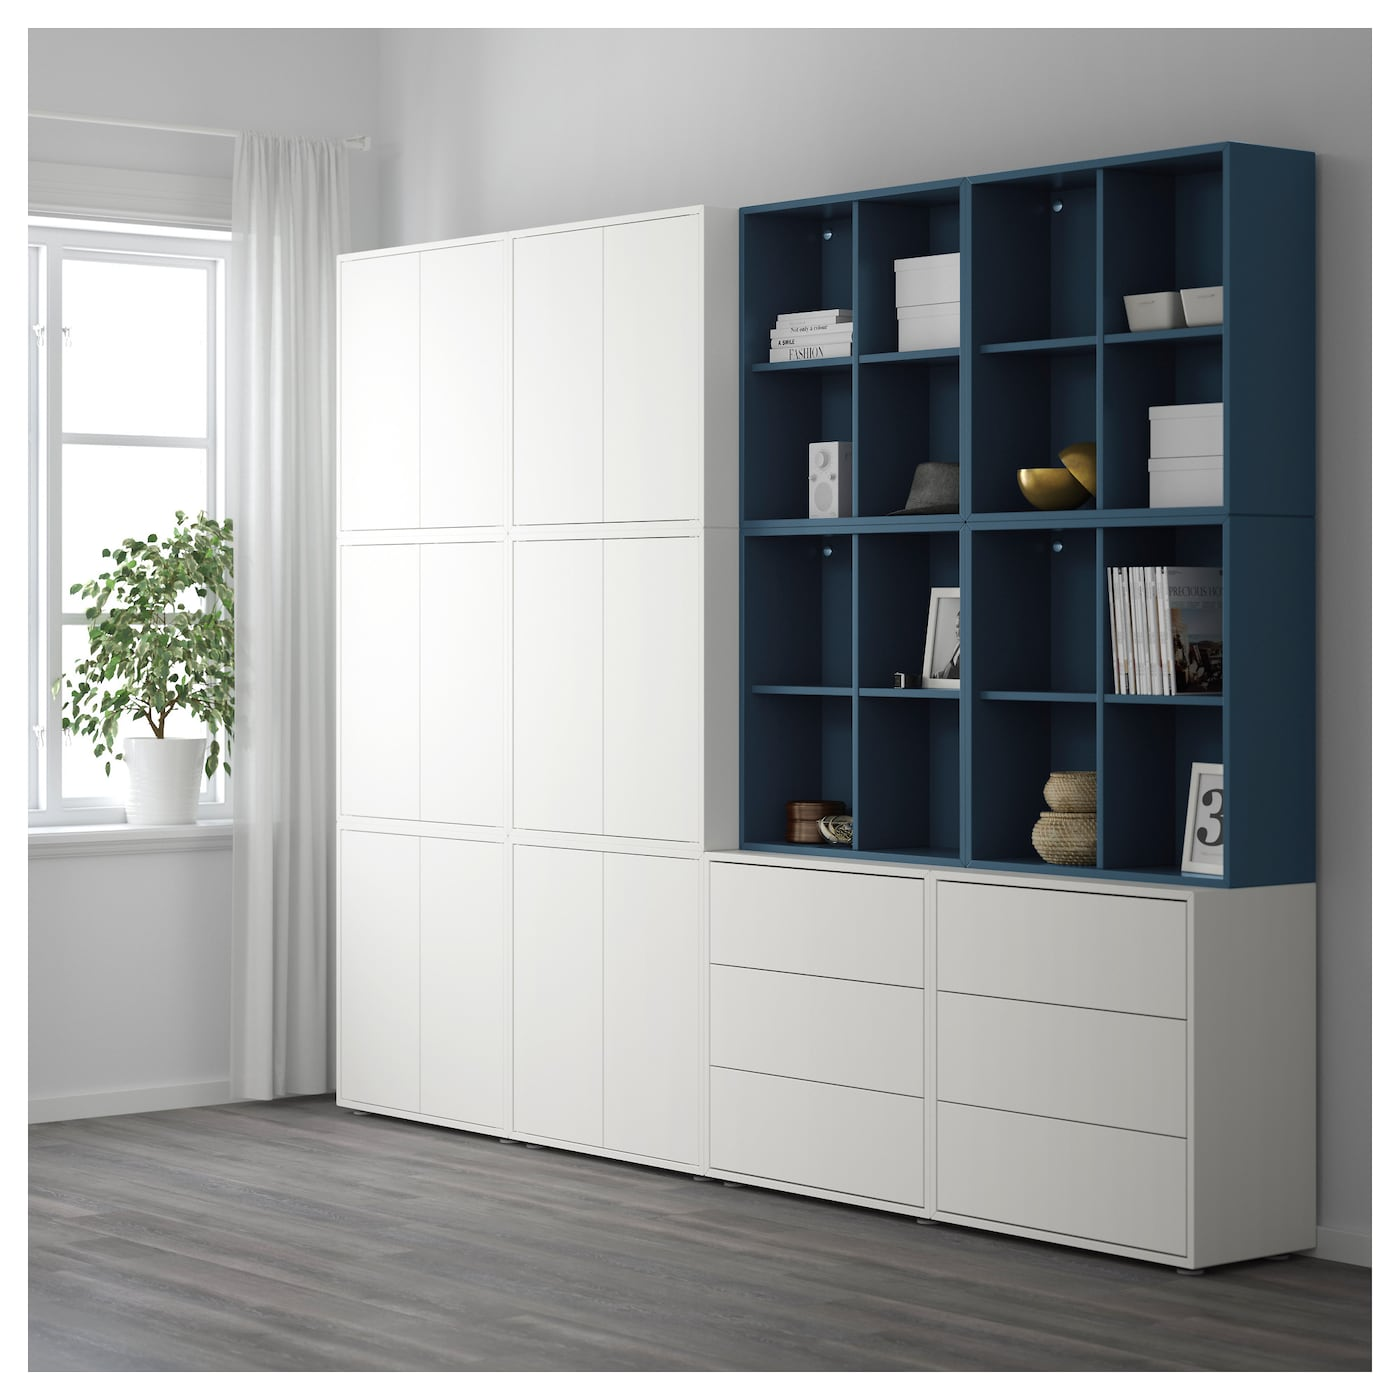 eket cabinet combination with feet white dark blue 280 x 35 x 212 cm ikea. Black Bedroom Furniture Sets. Home Design Ideas